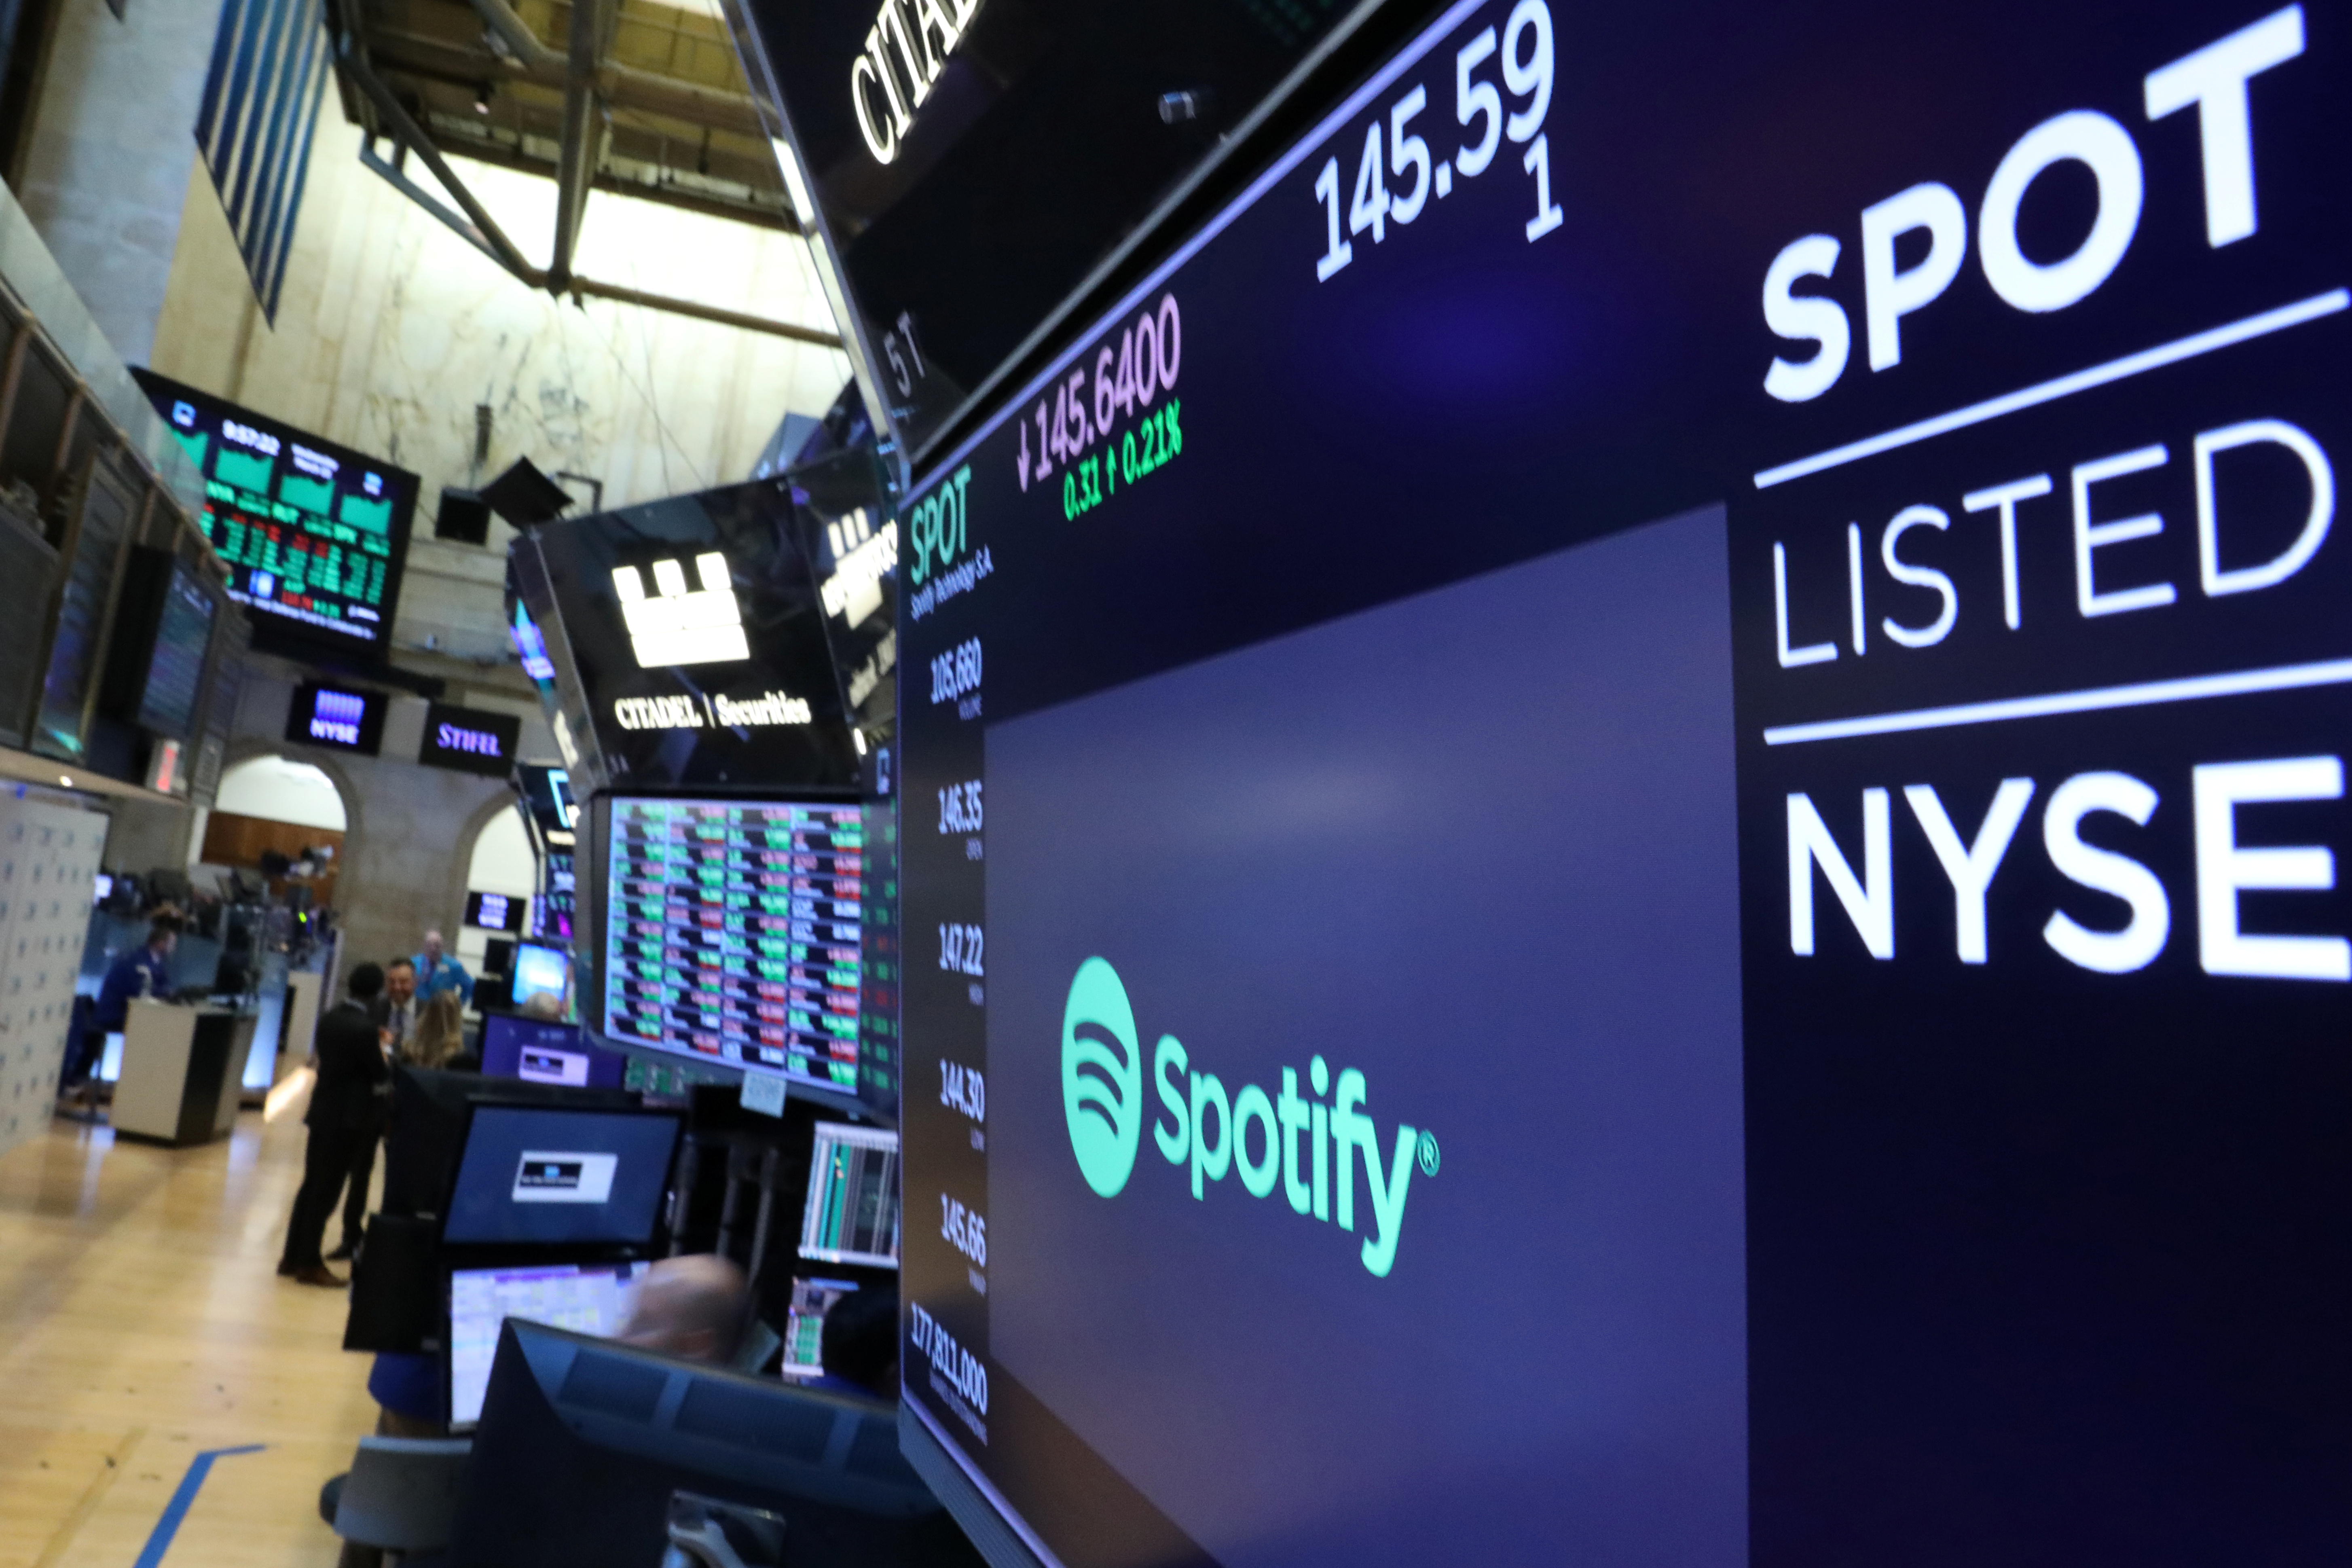 A screen displays the company logo and trading info for Spotify on the floor at the New York Stock Exchange (NYSE) in New York, U.S., March 13, 2019. REUTERS/Brendan McDermid